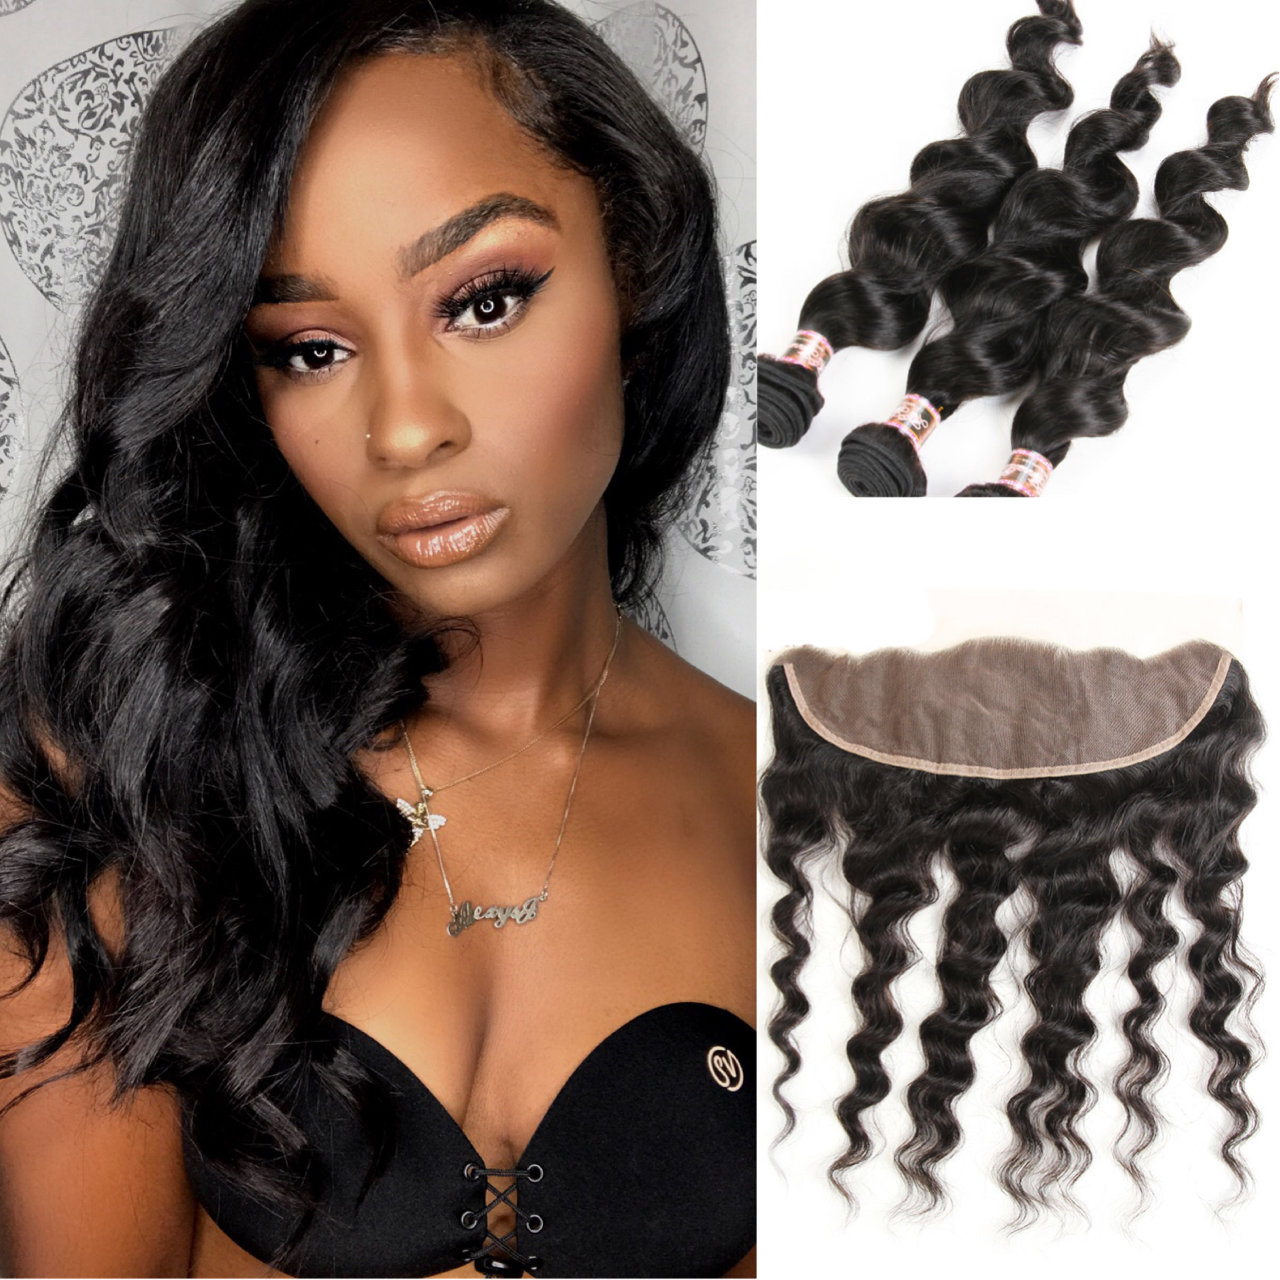 4 PCS/LOT Loose Body Wave Hair Bundles with 13x4 Frontal Closure Bleached Knots Lace Frontal